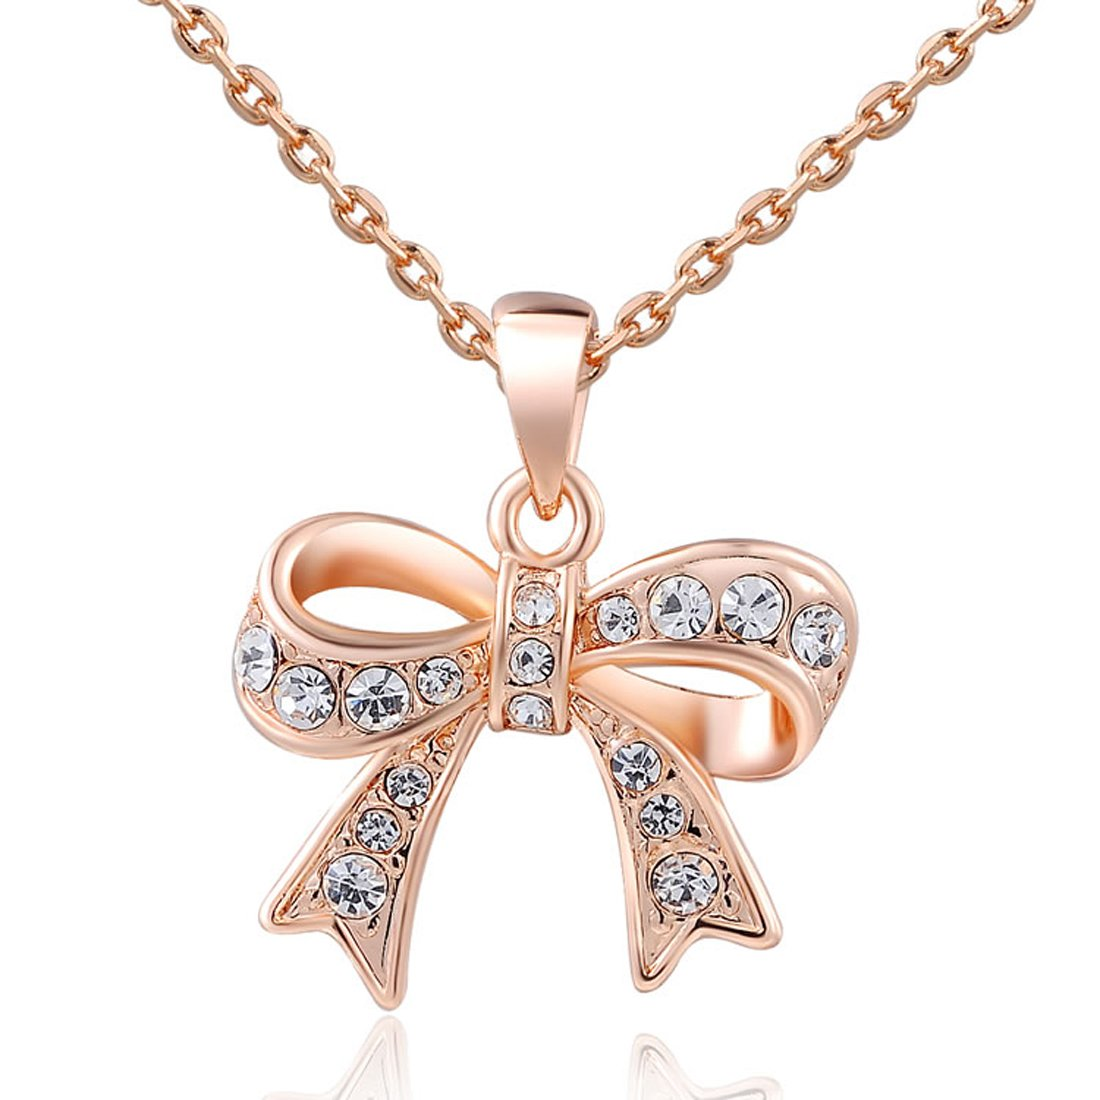 Women Charm Lady Jewelry Pendant Rose Gold Beautiful Bow Chain Necklace CY-Buity KNEJ1302